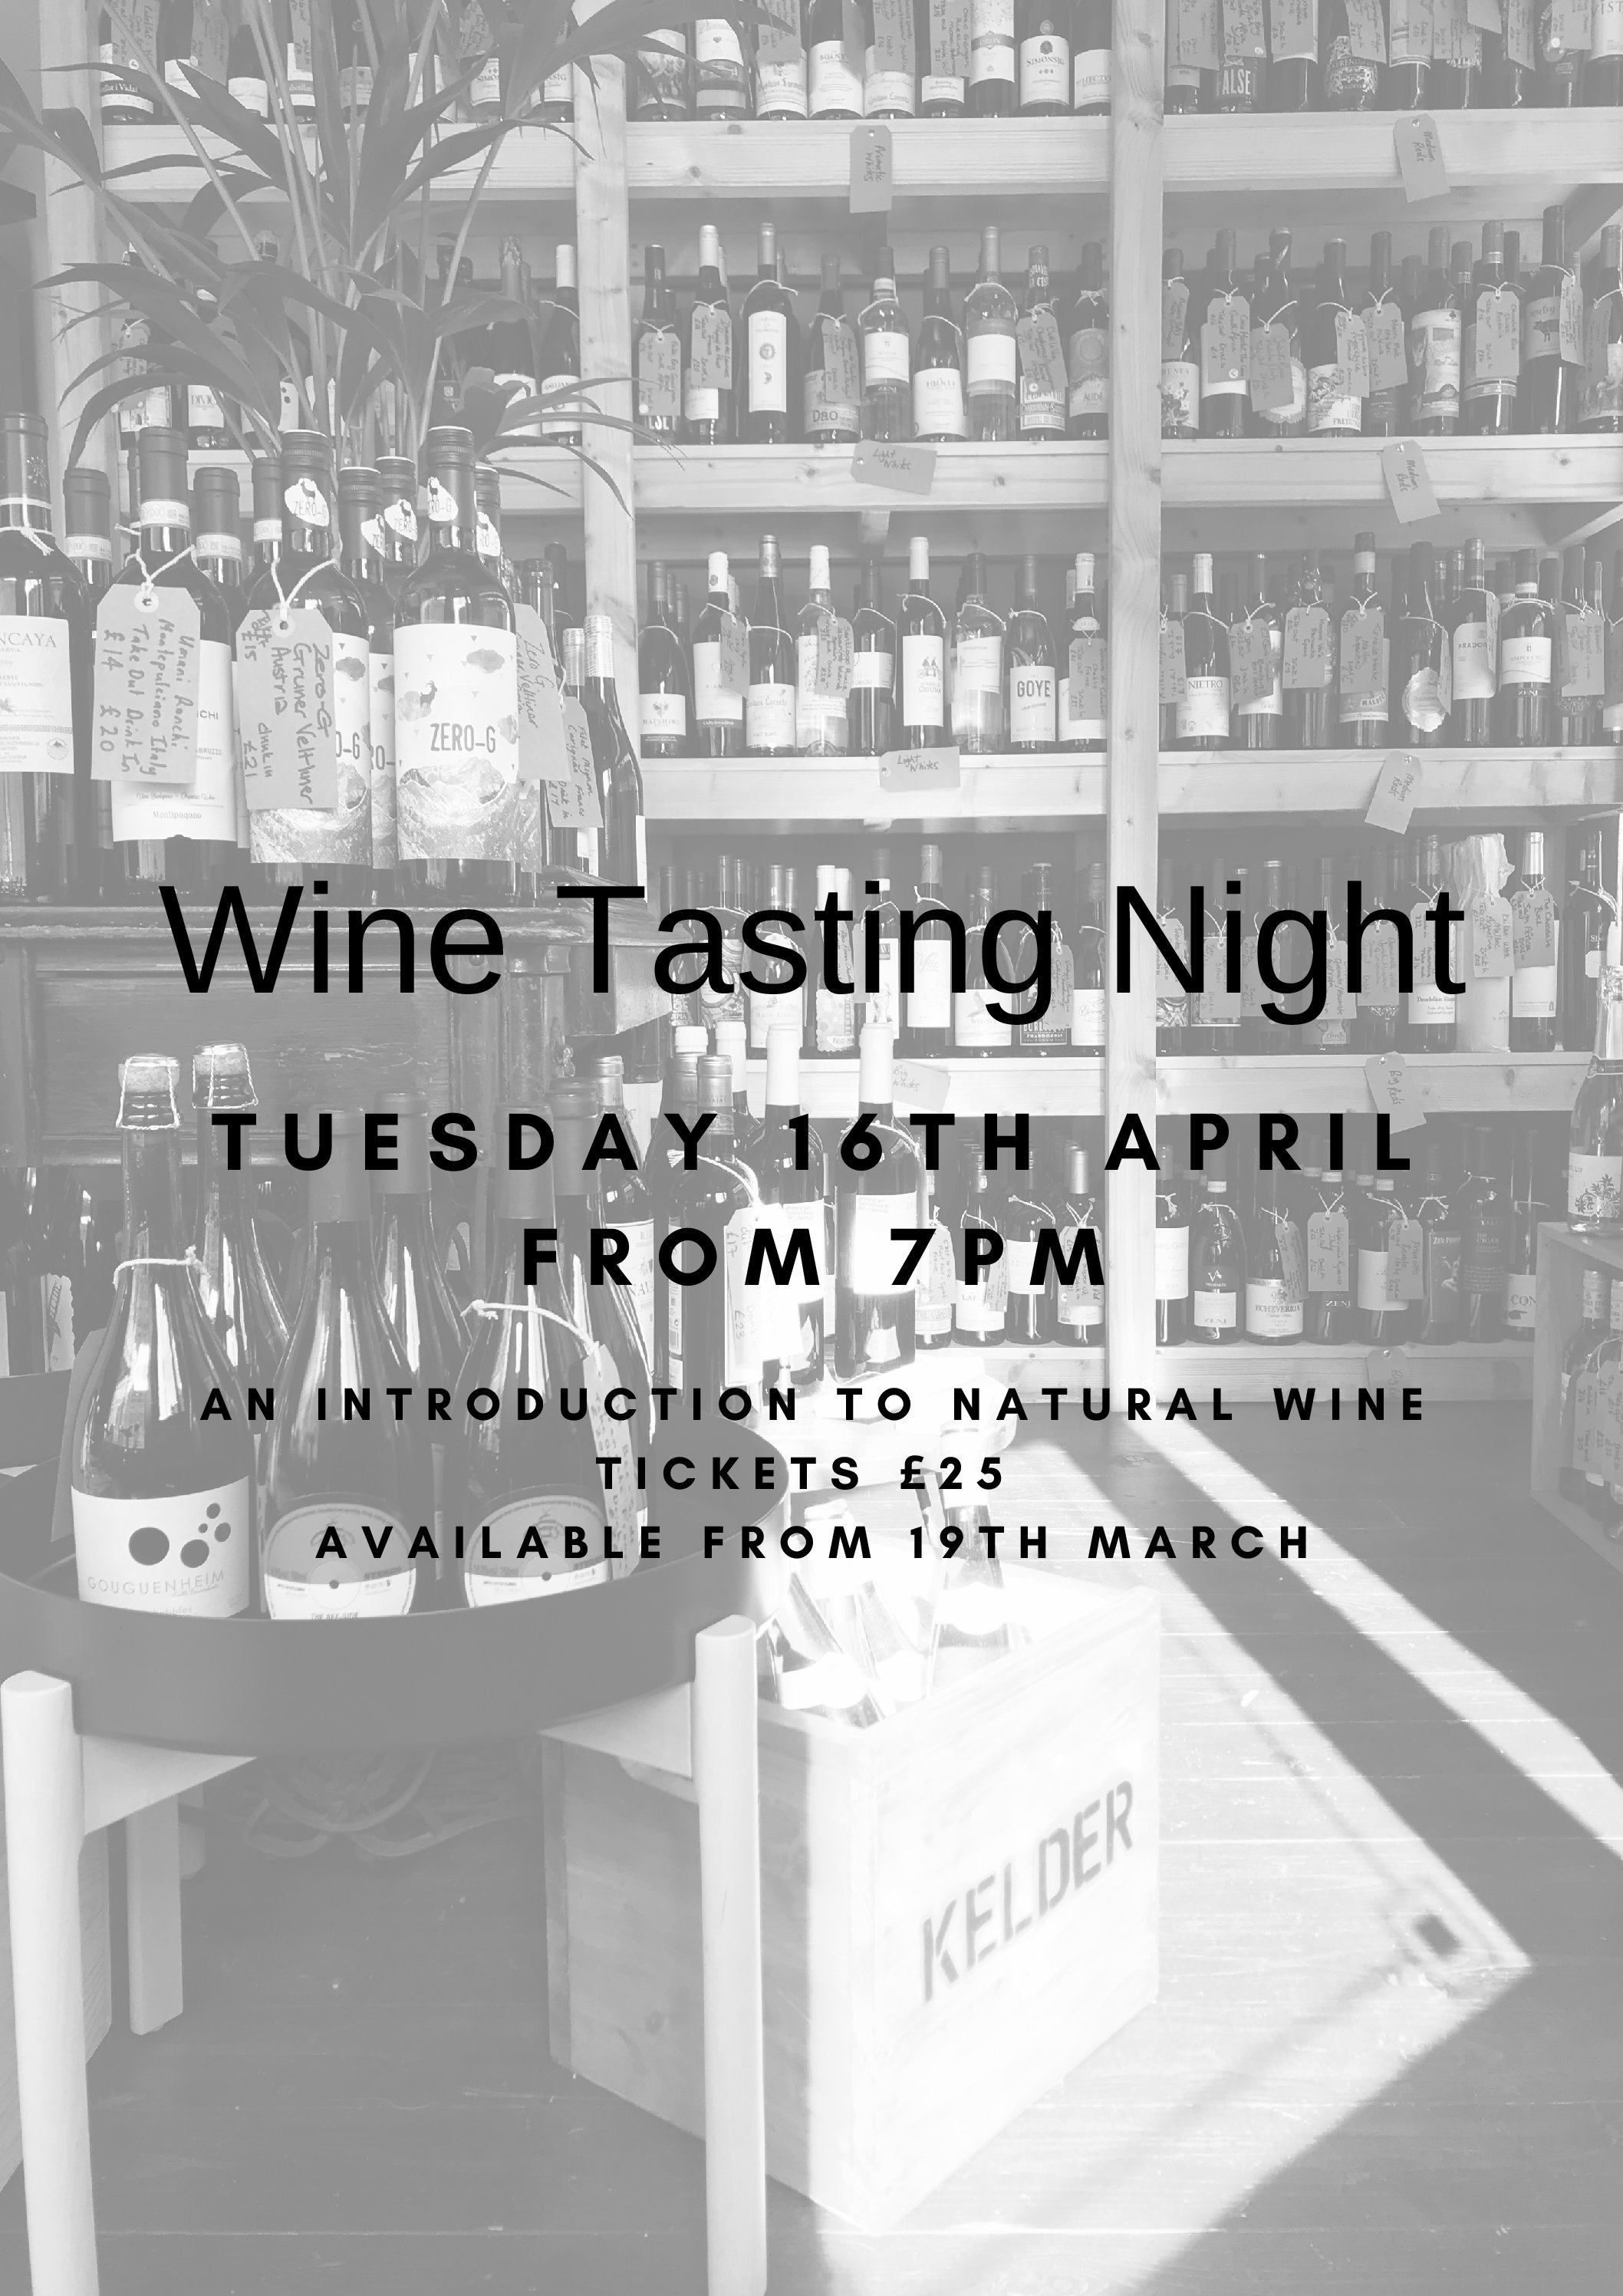 Wine Tasting Night – An introduction to Natural Wines